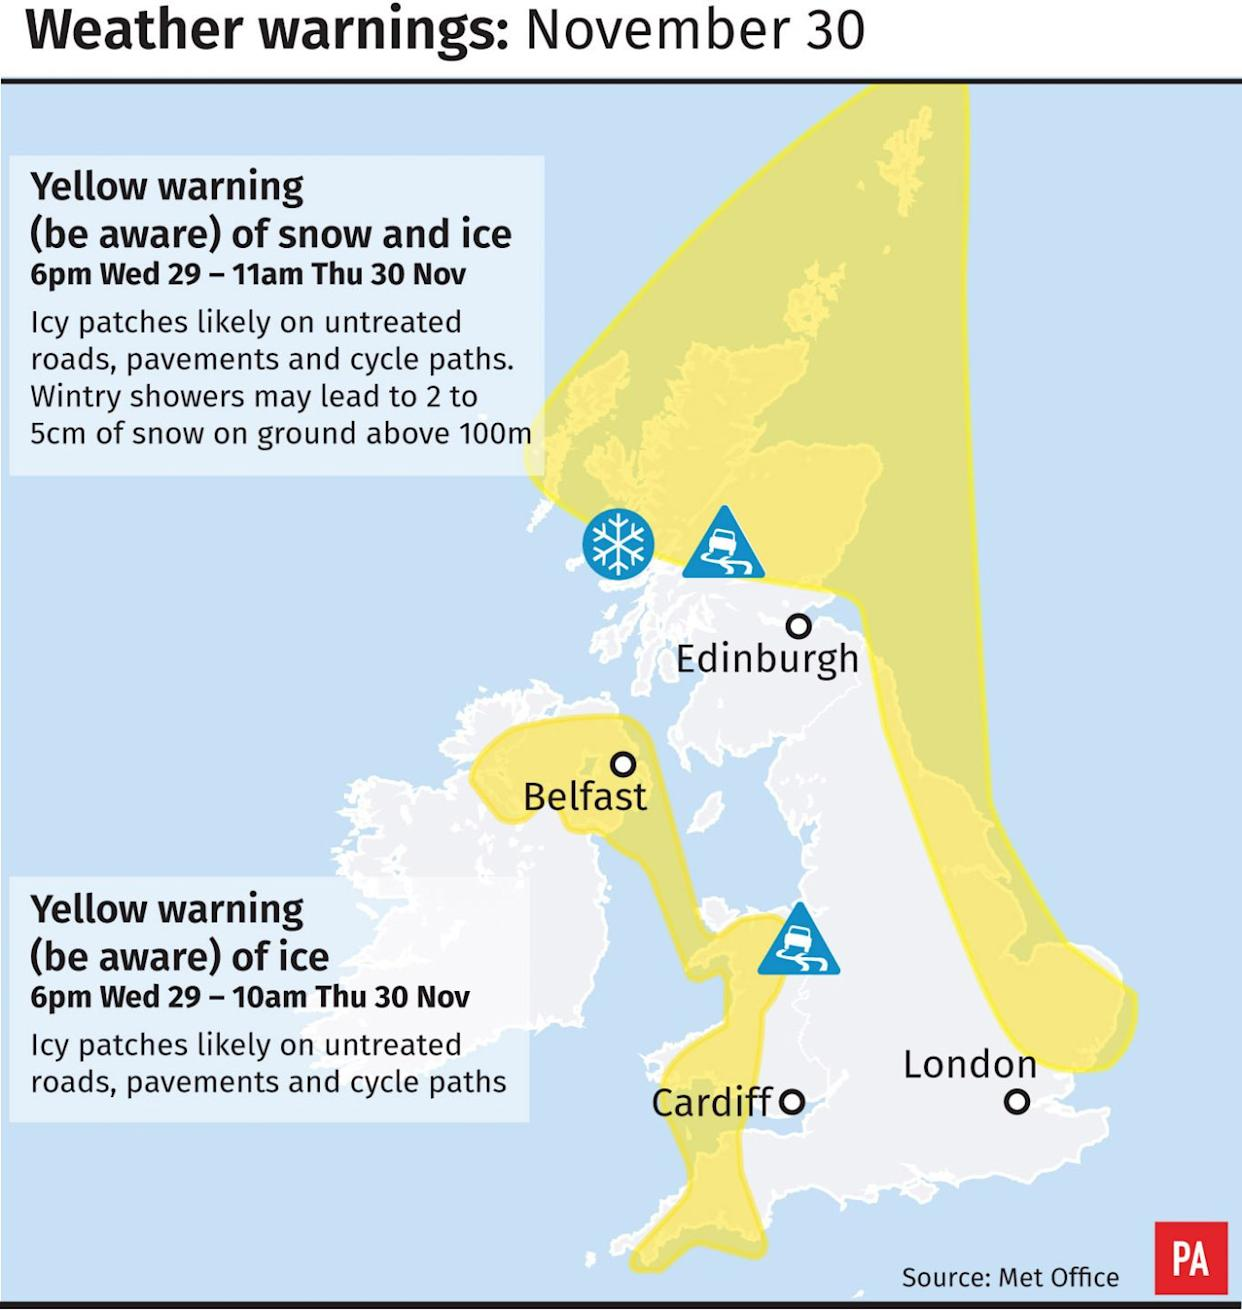 Weather warnings of snow and ice for November 30